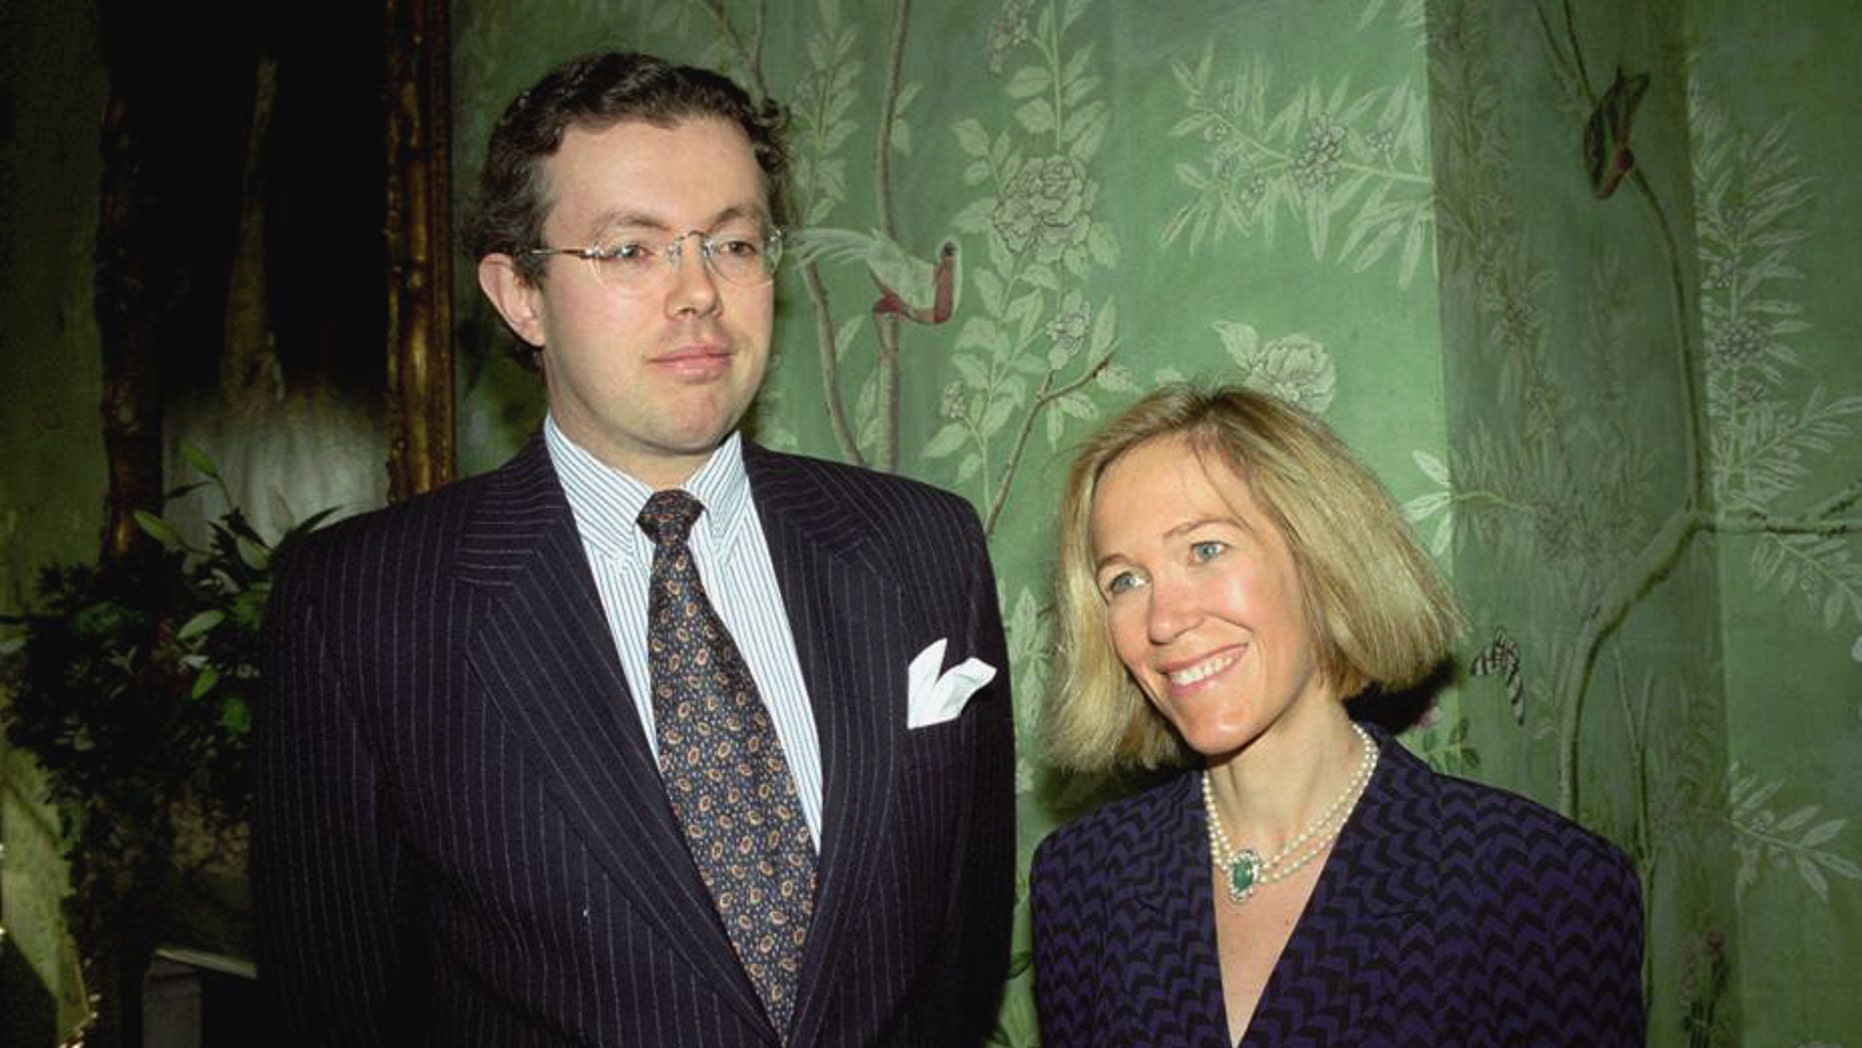 This photo of Nov. 26, 1996 shows Eva Rausing, right, and her husband Hans Kristian Rausing at Winfield House, London, the residence of the US ambassador to the UK attending the Glamour America Fashion Show and lunch. One of Britain's richest women, American-born Eva Rausing, was found dead in her west London home and a man was arrested in connection with the case, British police say, adding that an autopsy had failed to uncover a formal cause of death. Rausing, 48, was the wife of Hans Kristian Rausing, heir to the TetraPak fortune his father built by creating a successful manufacturer of laminated cardboard drink containers.  (AP Photo/Alan Davidson/The Picture Library Ltd)